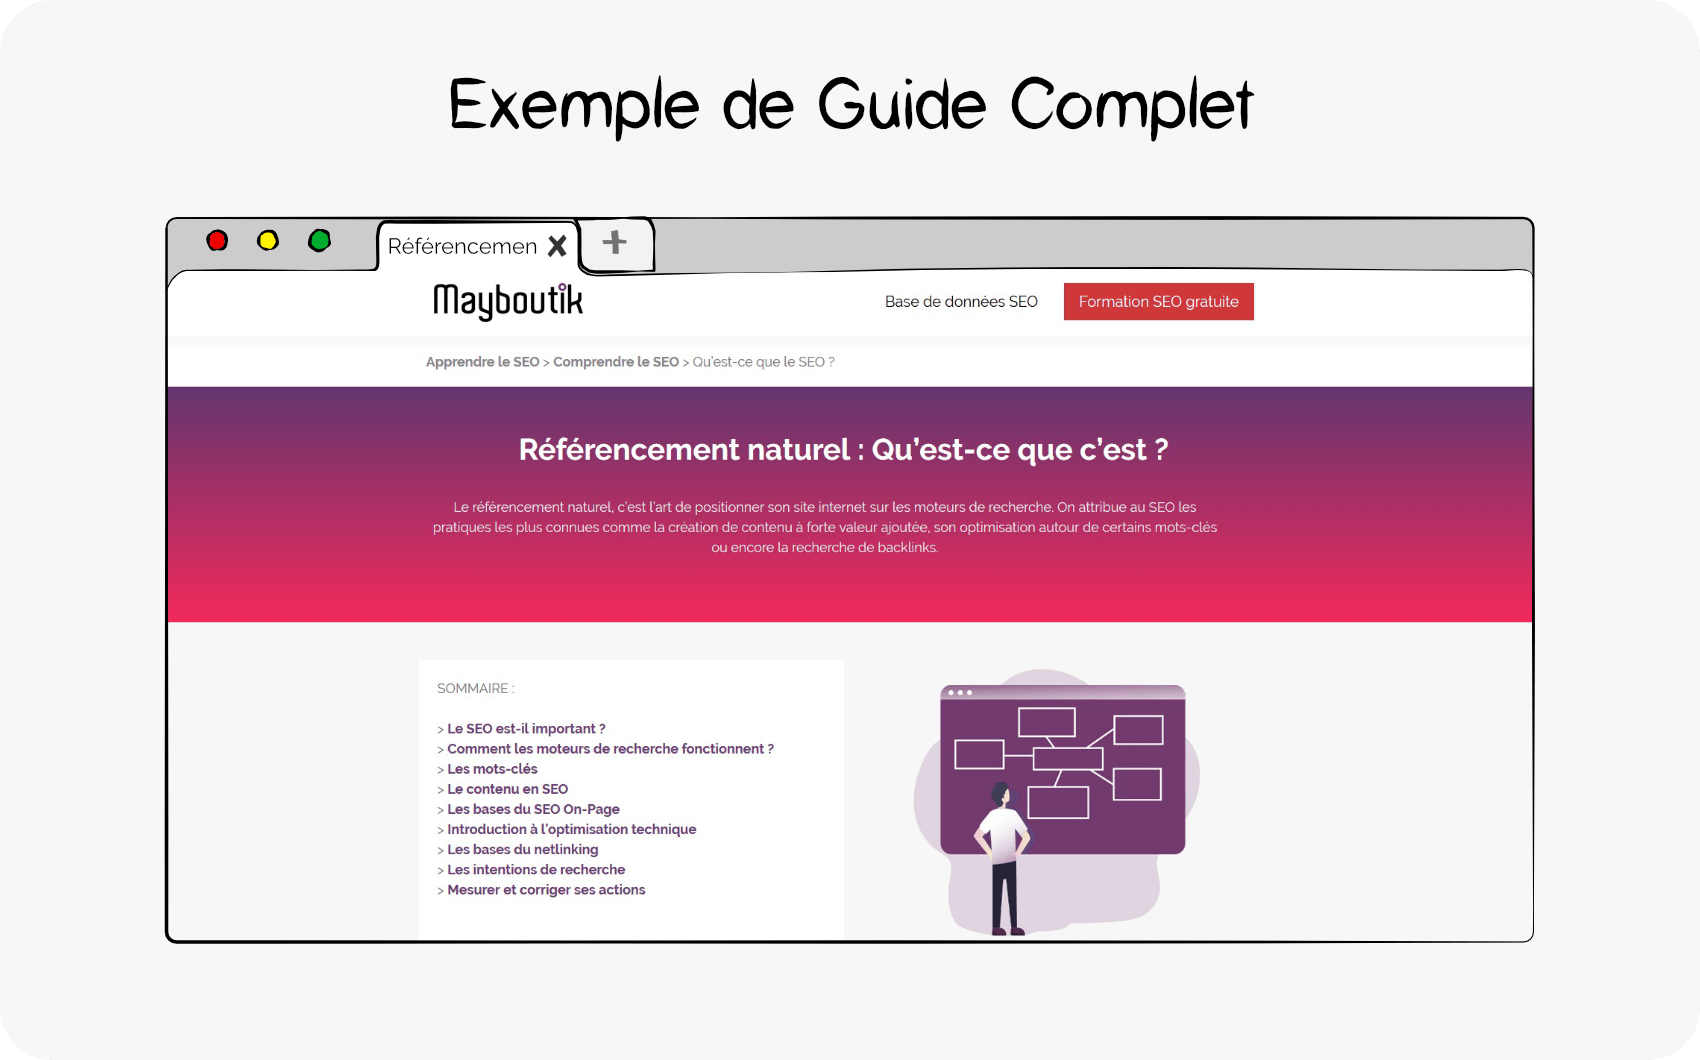 Exemple-Guide-Complet